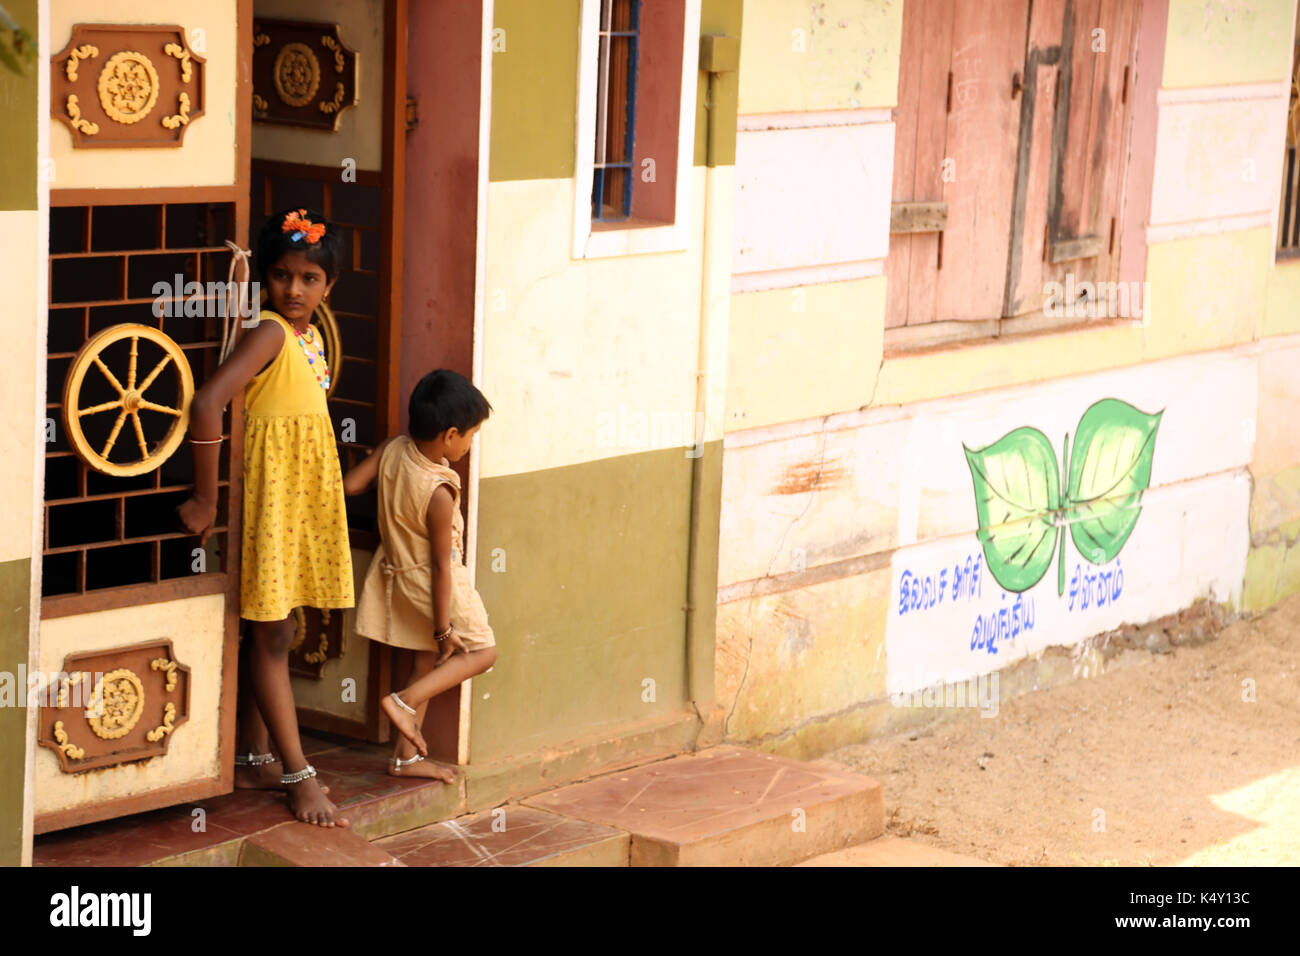 Unidentified children in rural village at India. - Stock Image